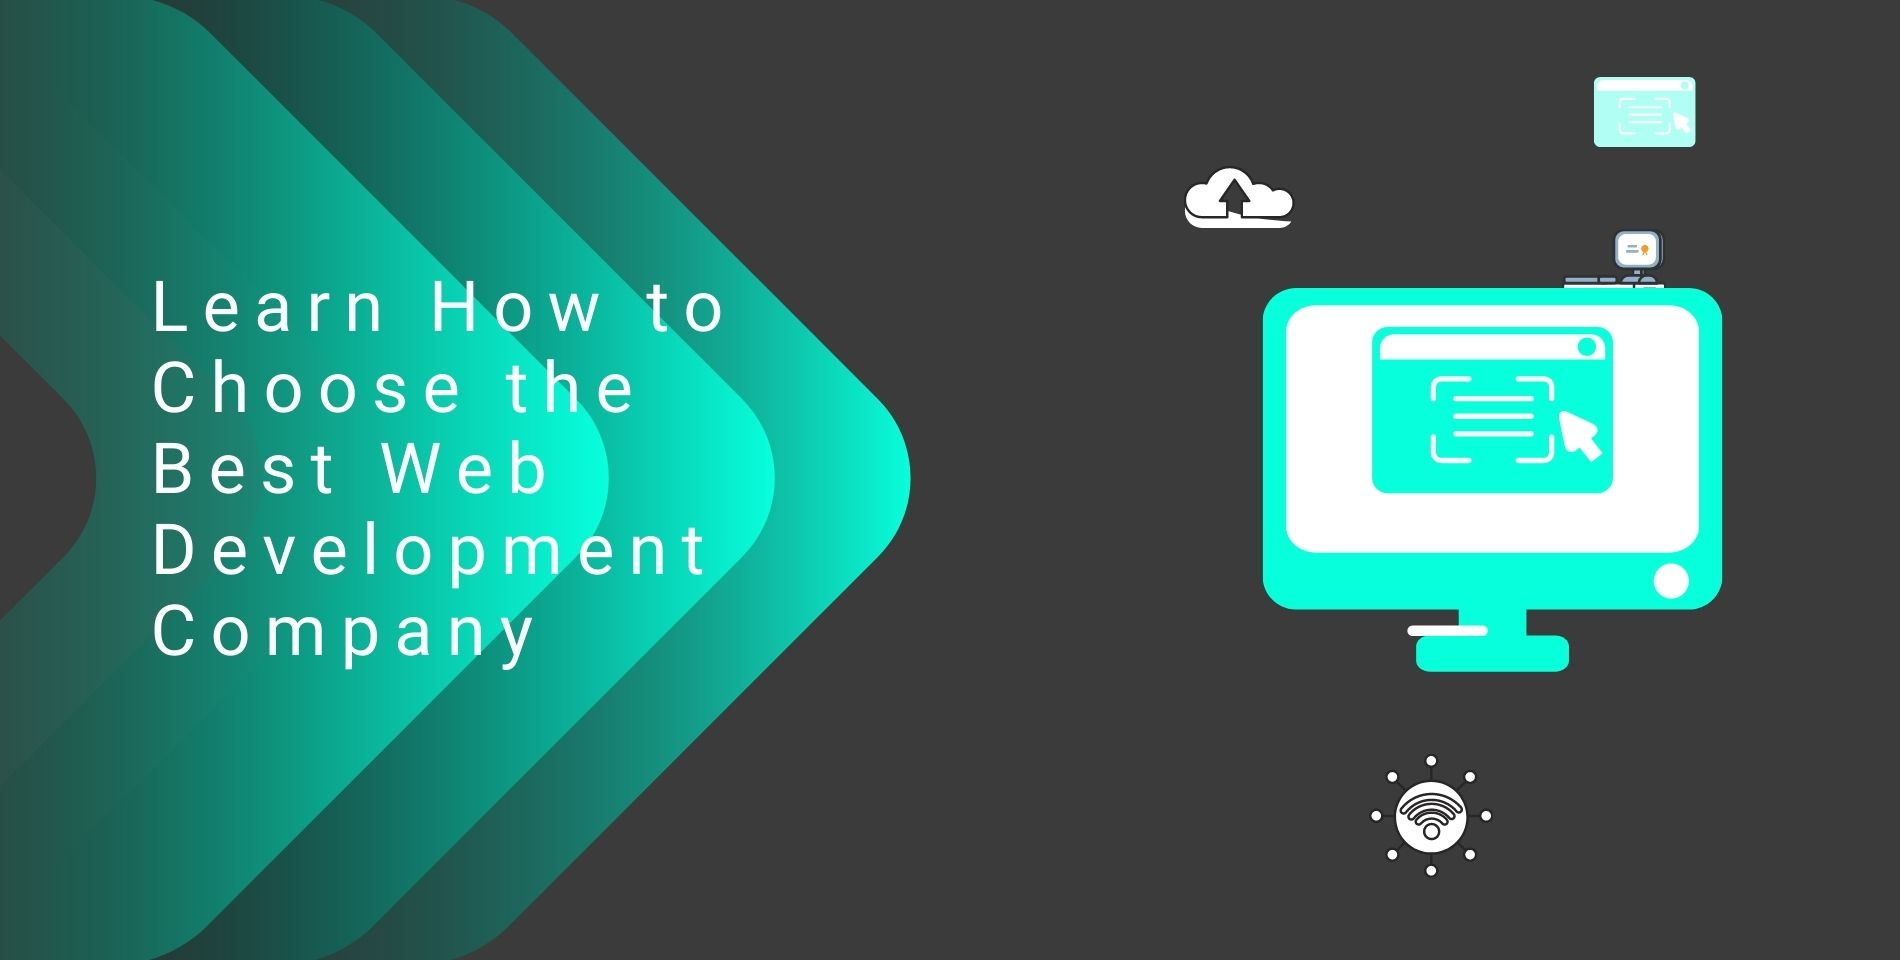 Learn How to Choose the Best Web Development Company